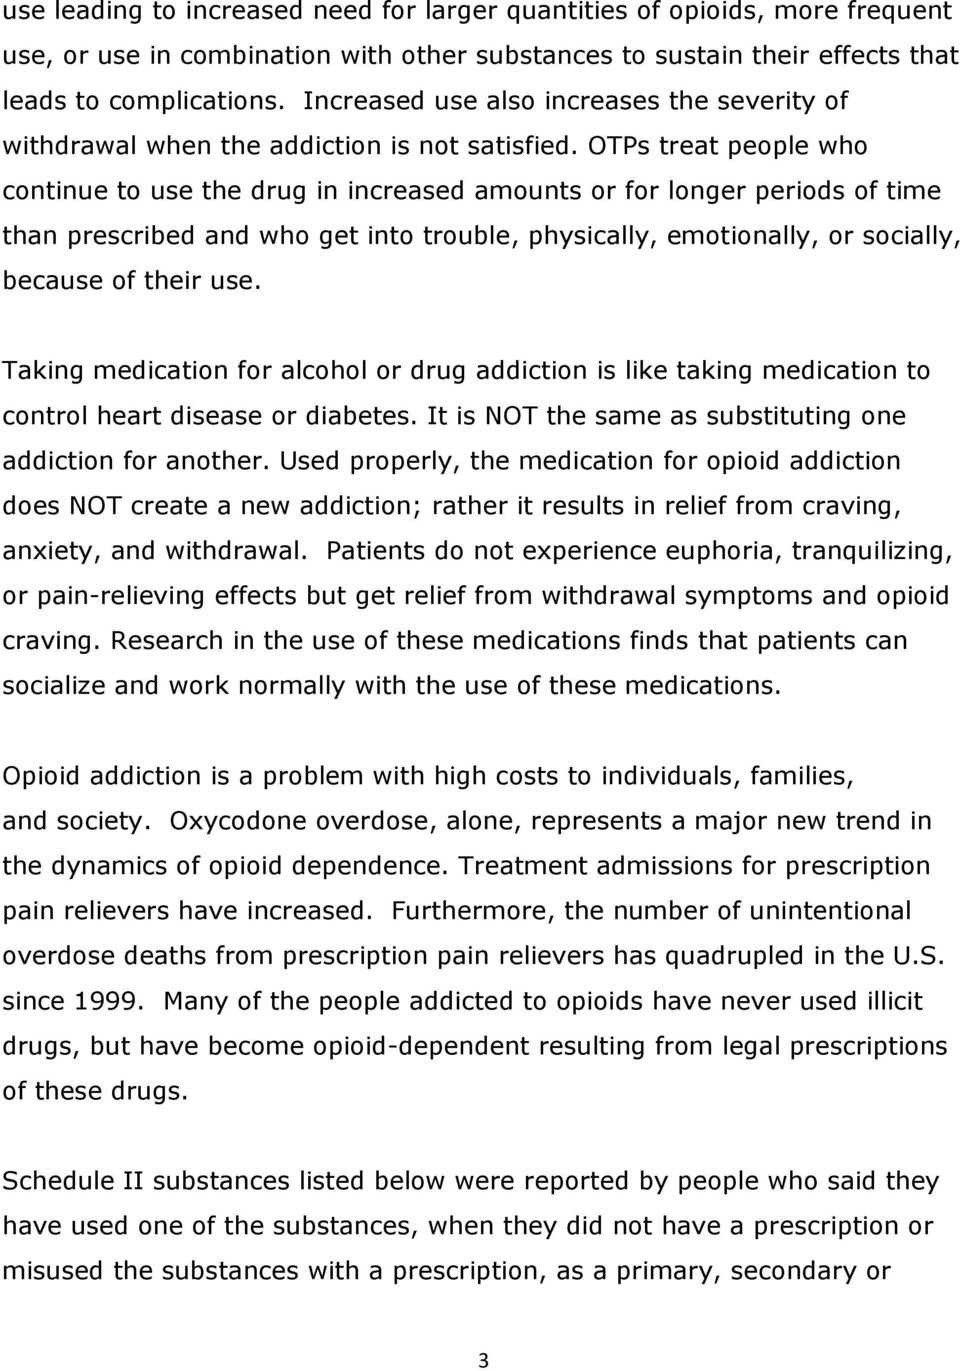 OTPs treat people who continue to use the drug in increased amounts or for longer periods of time than prescribed and who get into trouble, physically, emotionally, or socially, because of their use.